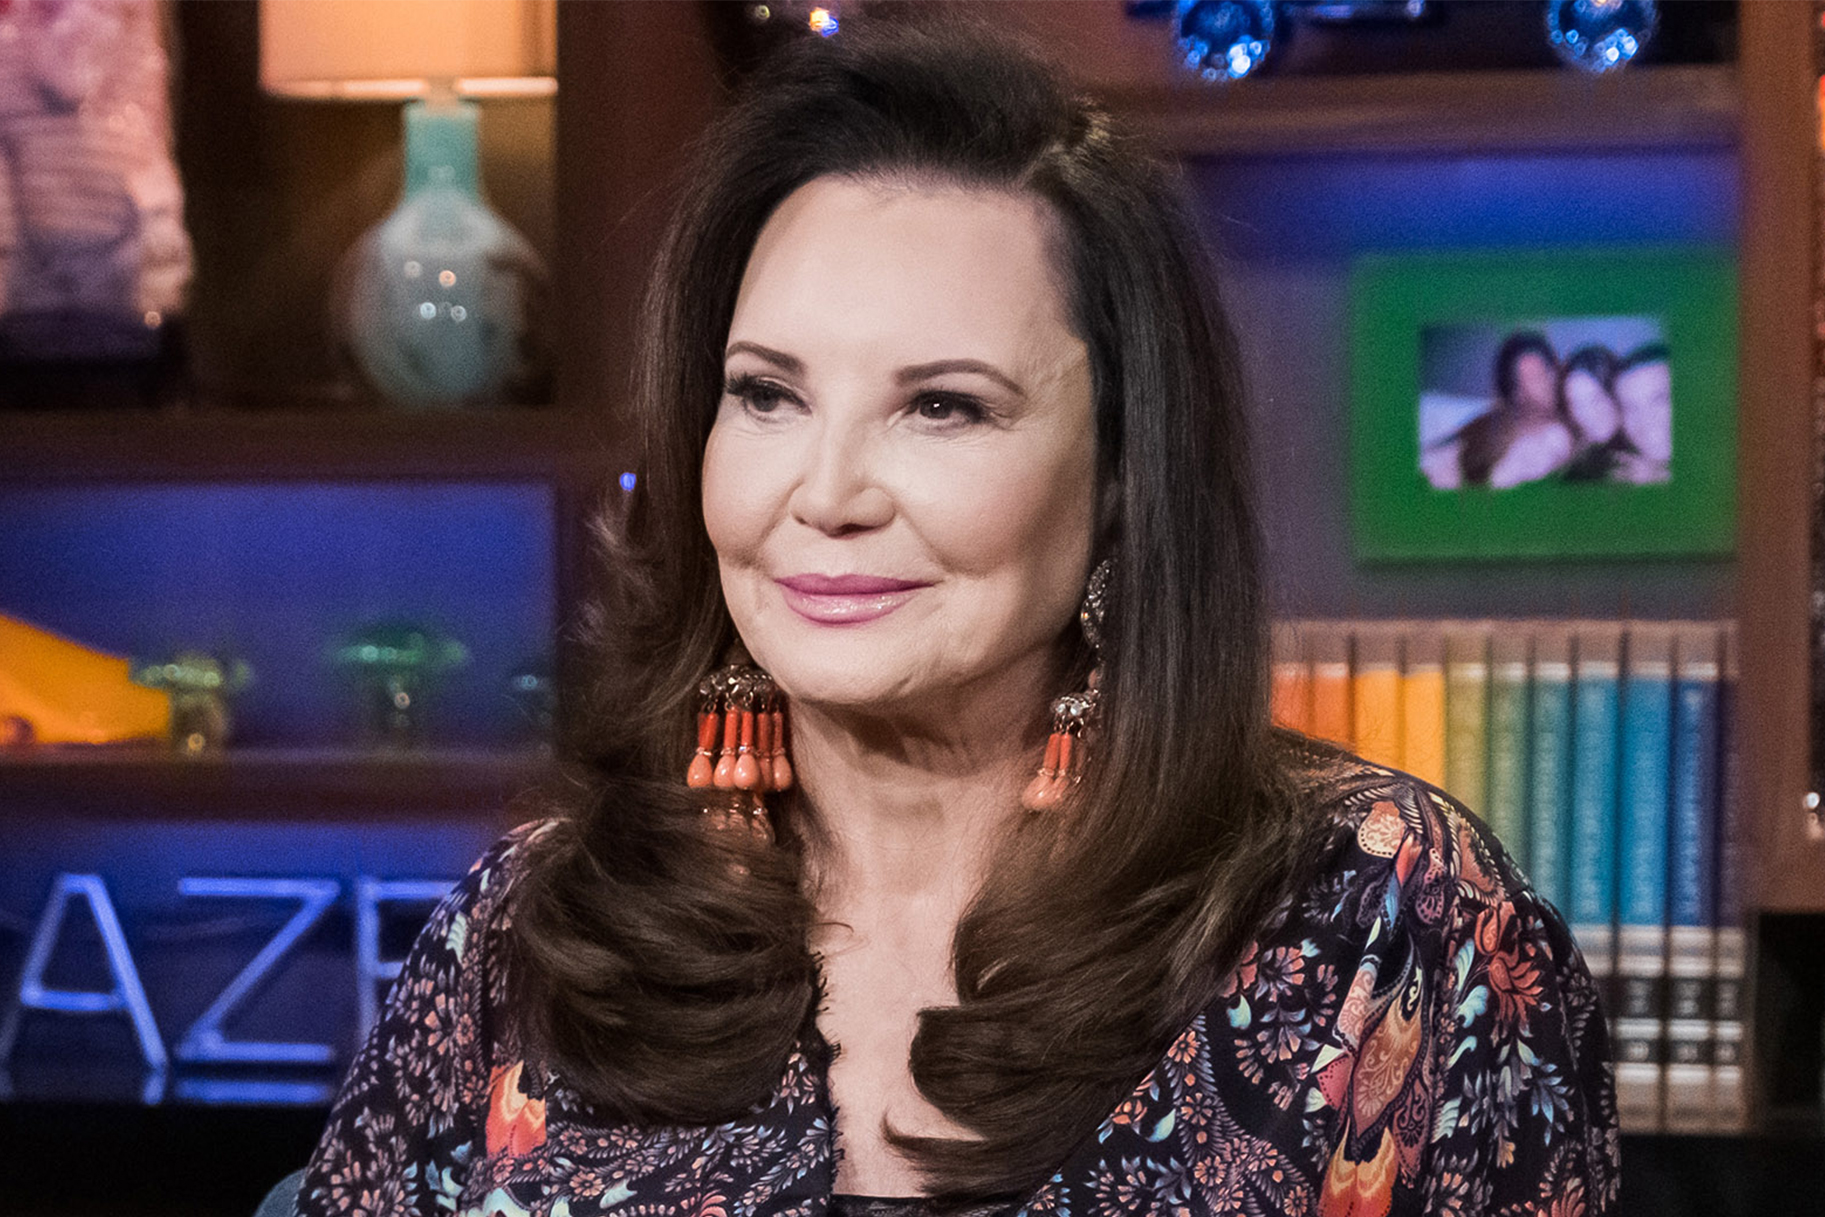 Patricia Altschul 78 Looks Incredible In Swimsuit Photo